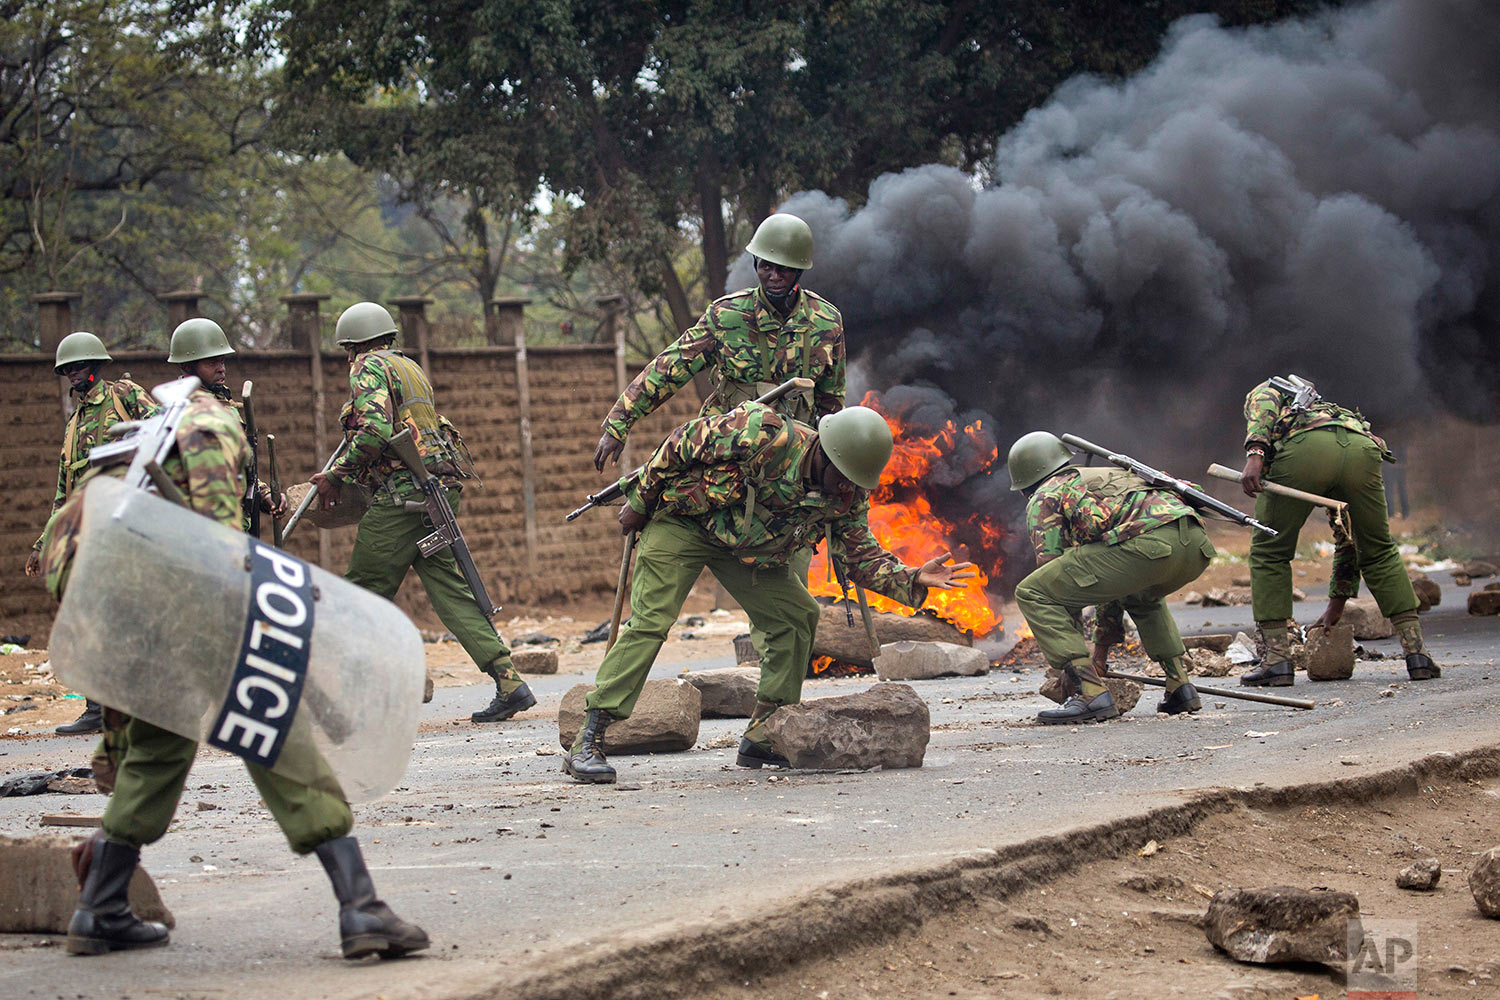 Kenyan security forces remove stones from a street blocked by supporters of Kenyan opposition leader and presidential candidate Raila Odinga who demonstrated in the Mathare area of Nairobi, Wednesday , Aug. 9, 2017. Odinga alleges that hackers manipulated the Tuesday election results which appear to show President Uhuru Kenyatta has a wide lead over Odinga. (AP Photo/Jerome Delay)